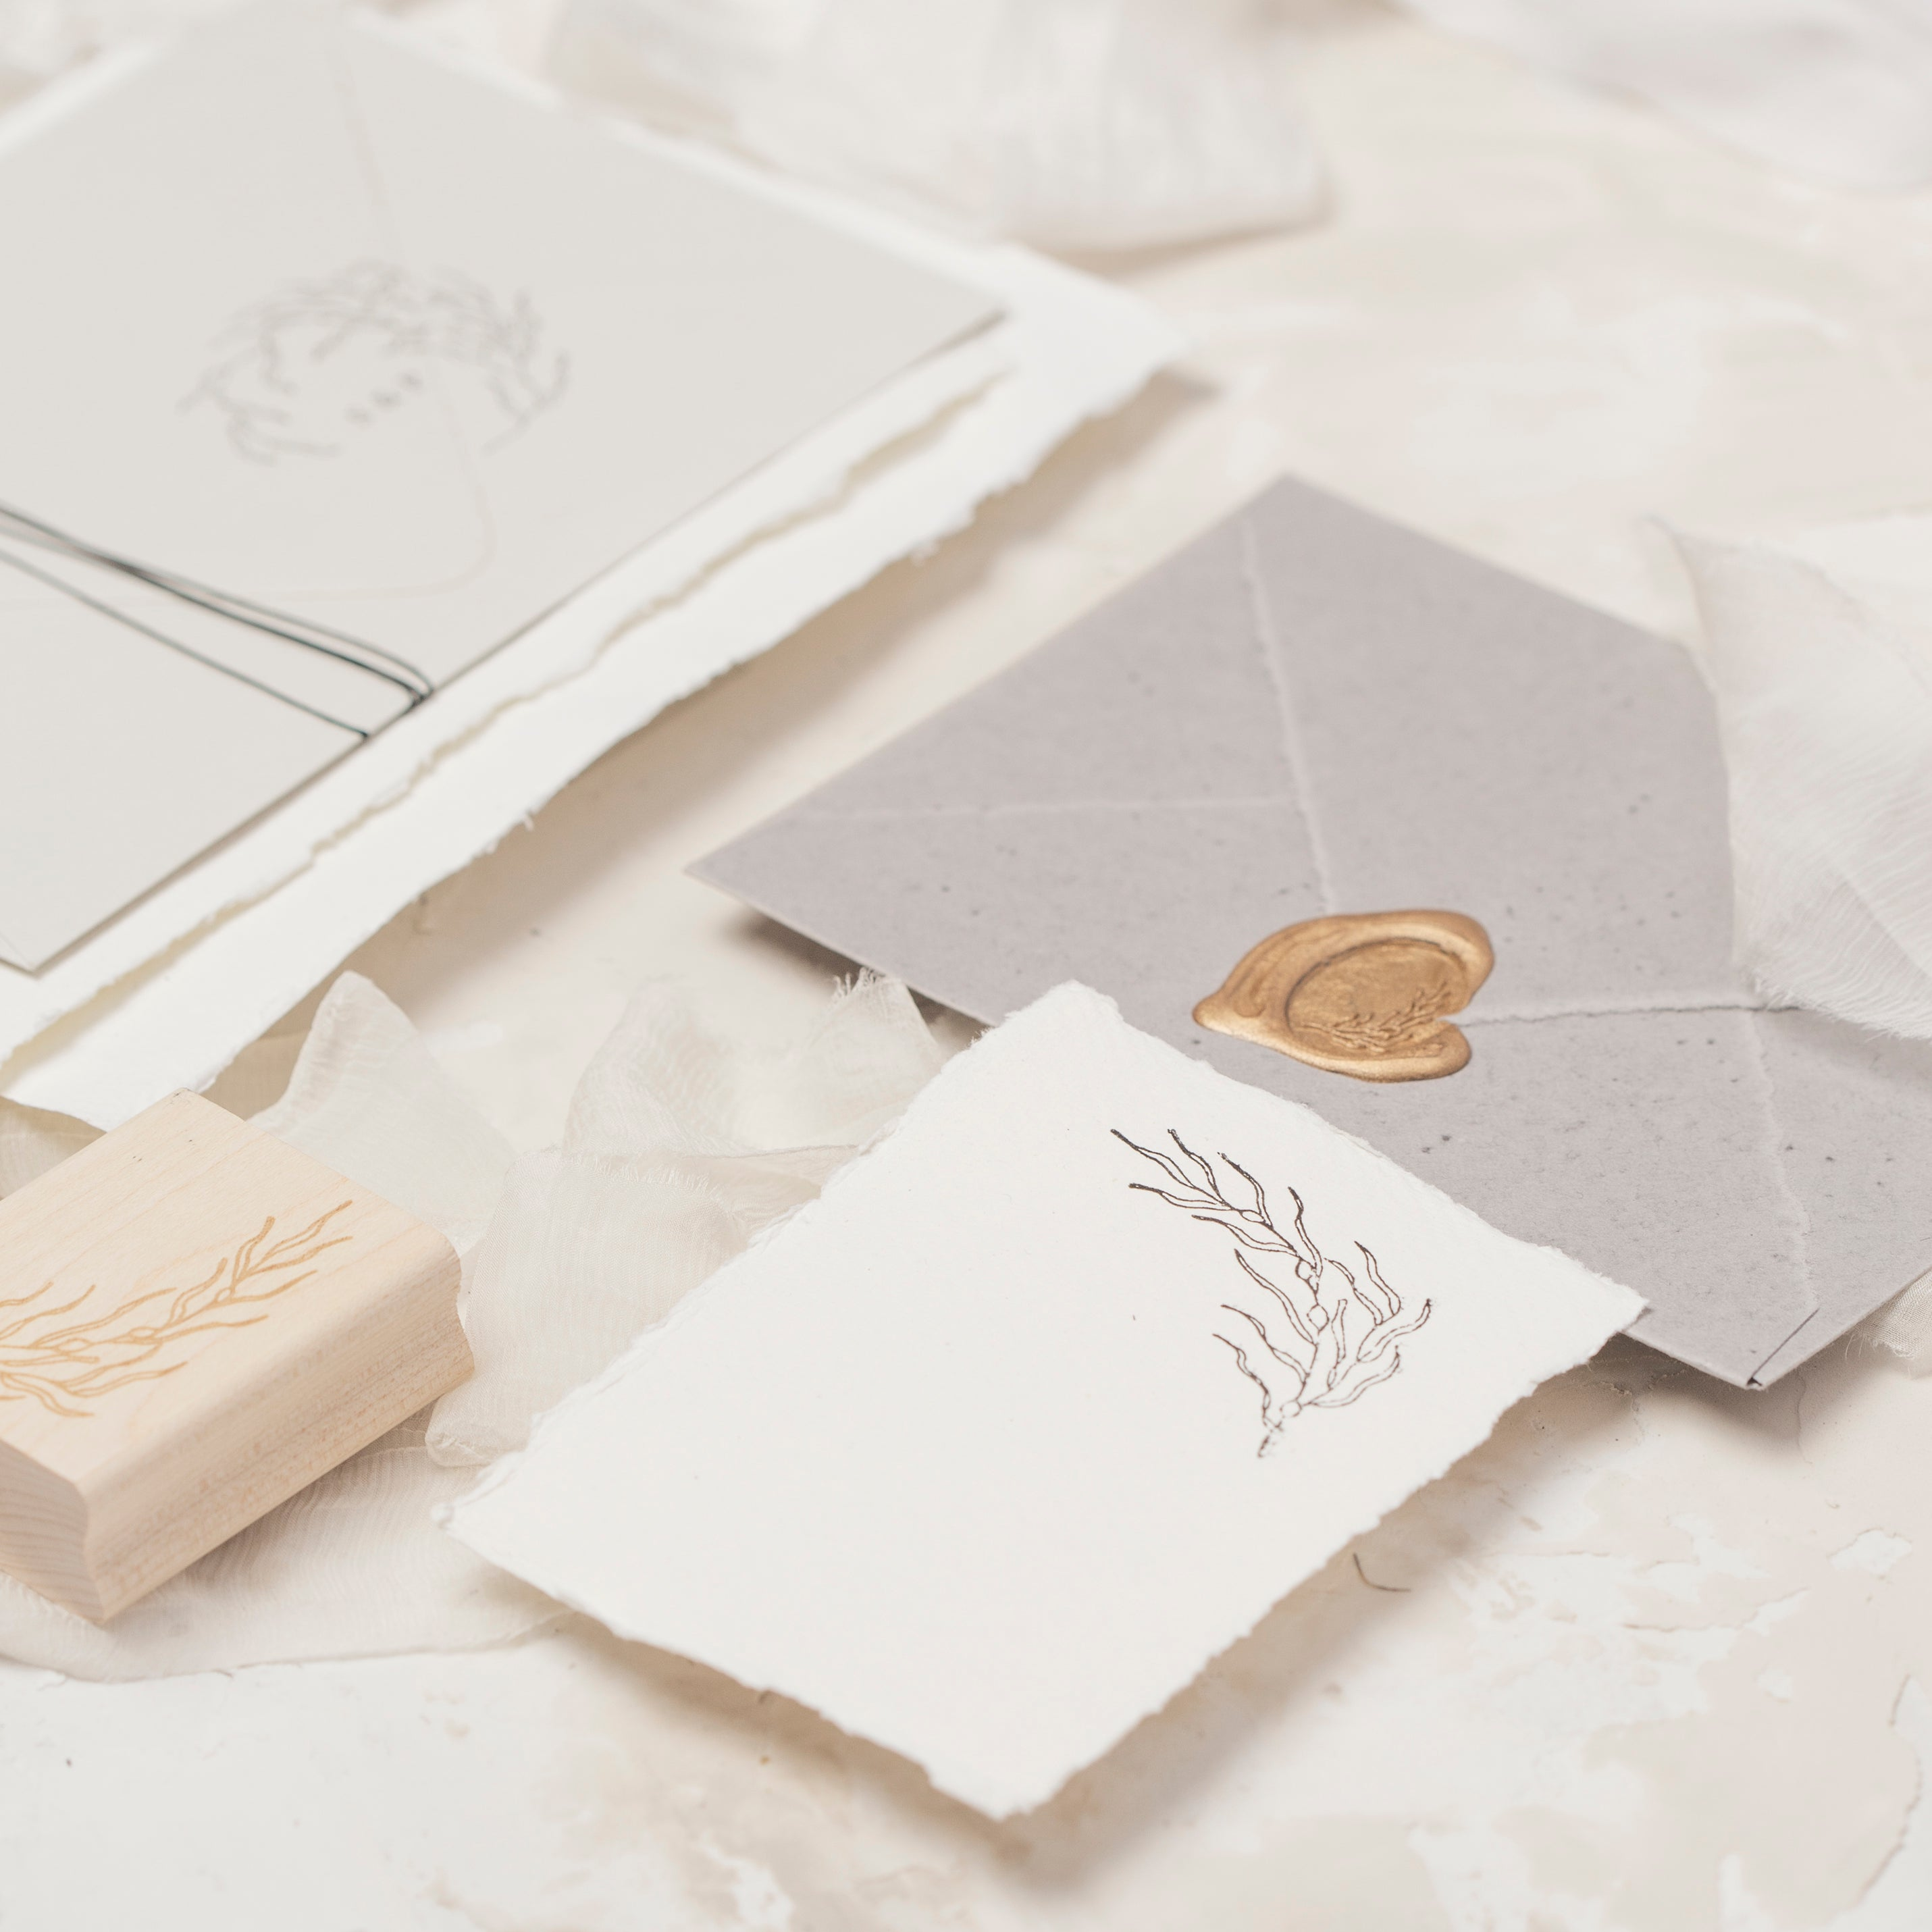 Sea Breeze Coastal Wax Seals, Rubber Stamp & Embosser for Wedding Invitations | Heirloom Seals